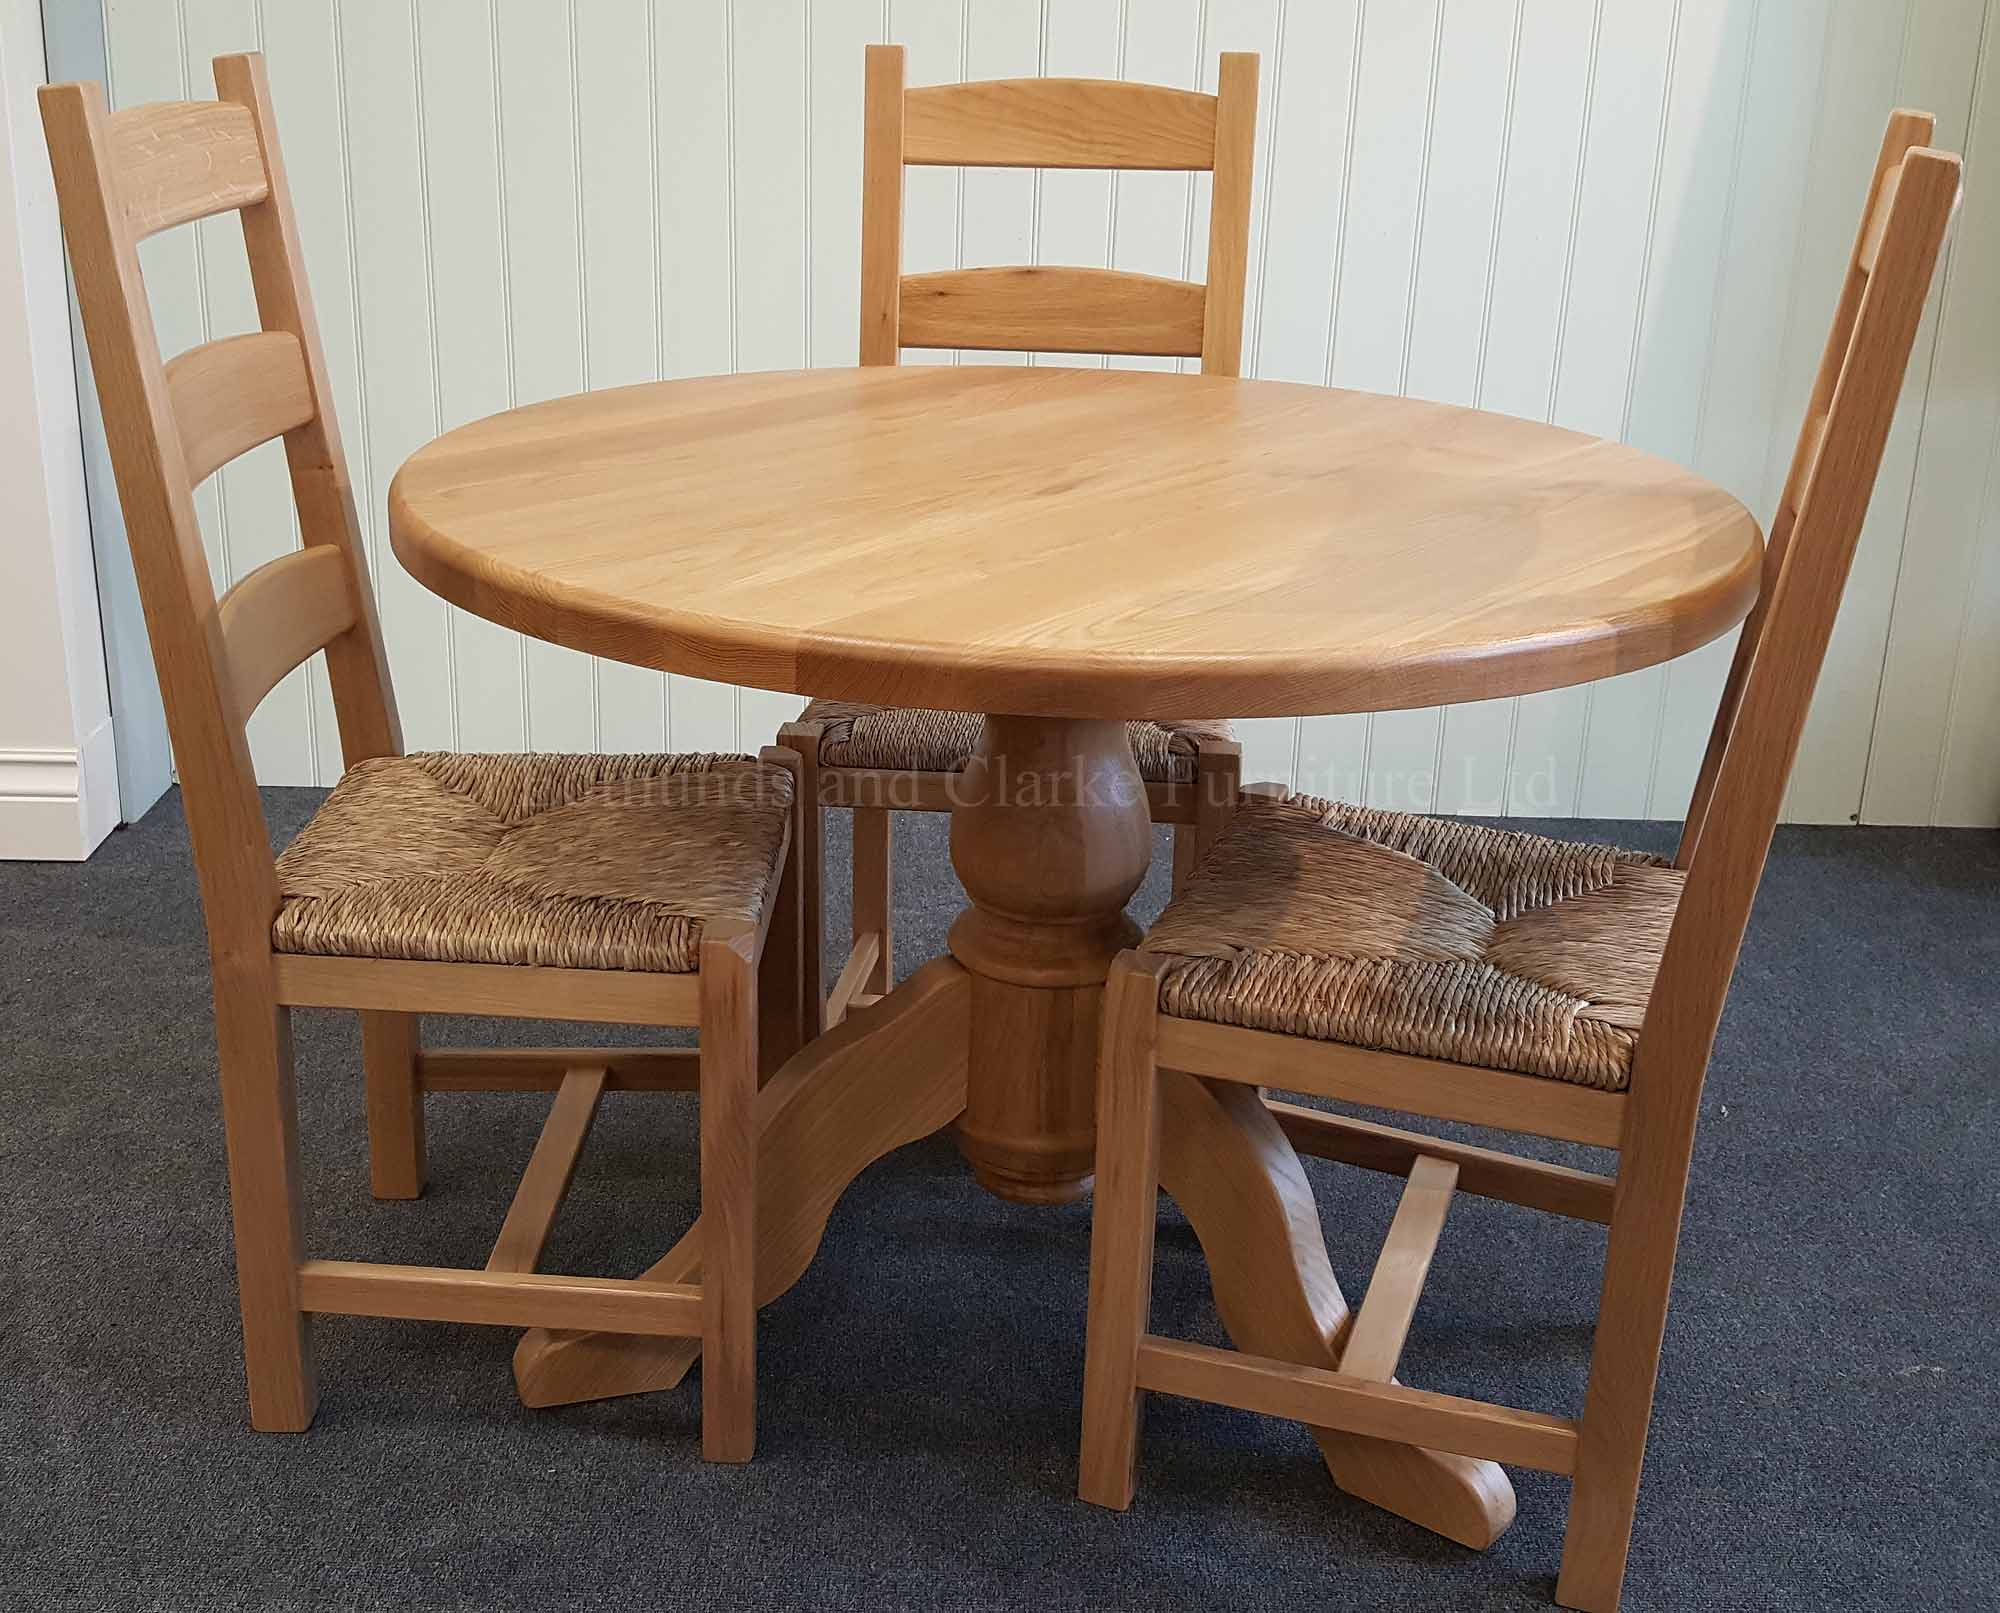 3' round solid oak dining table